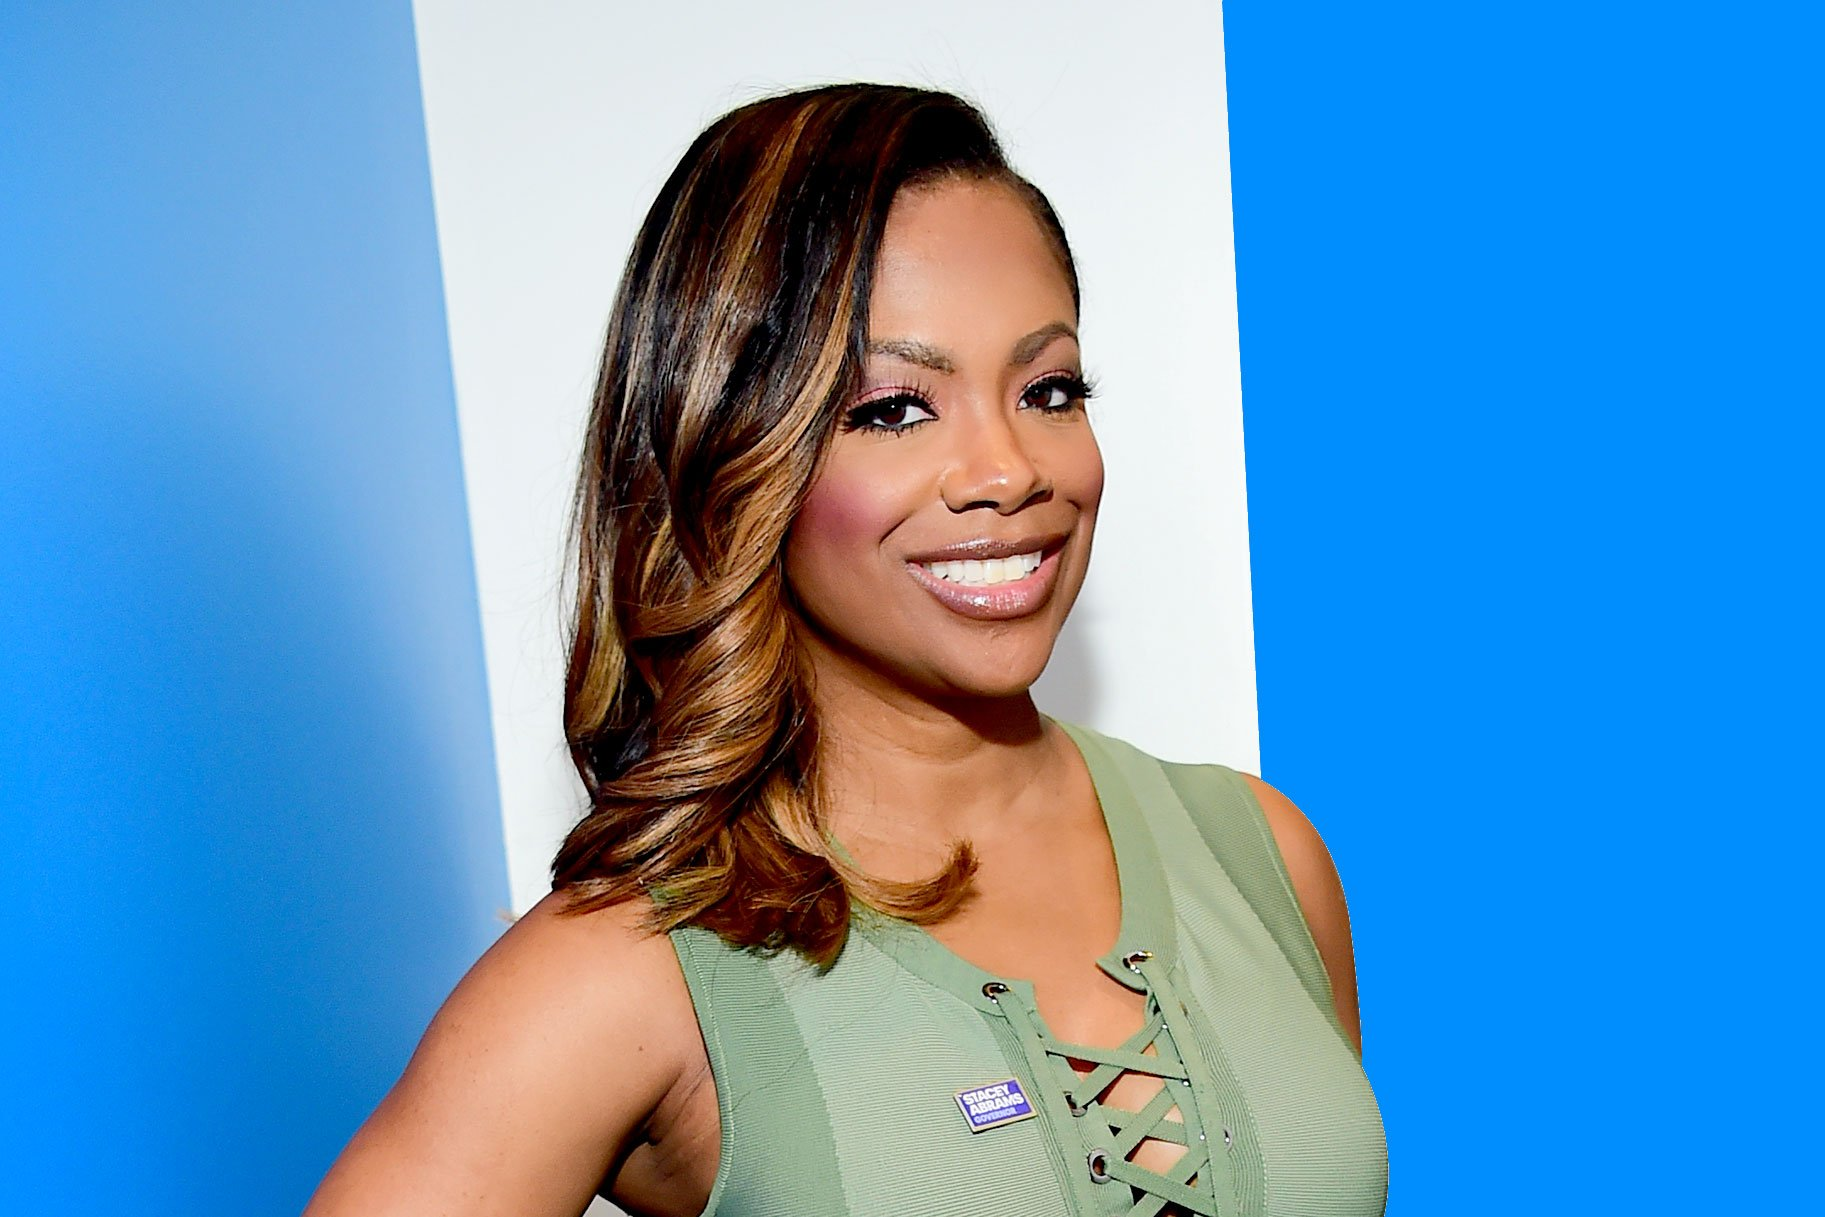 Kandi Burruss Is Back In The Studio! She Teamed Up With David Banner For A New Project